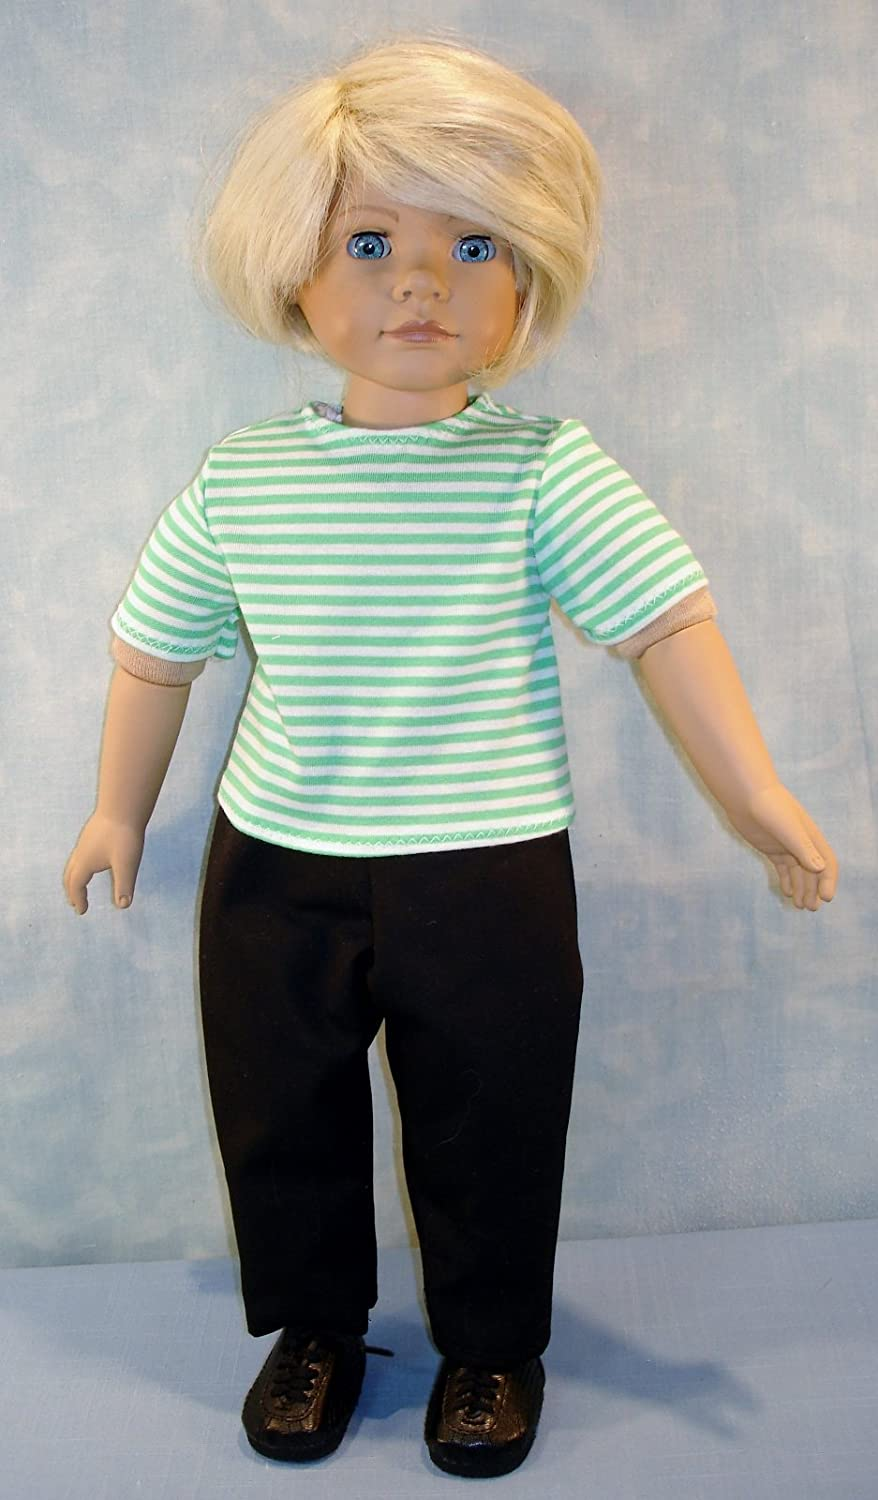 18 Inch Doll Clothes Green and White Striped Boys Pants Set handmade by Jane Ellen